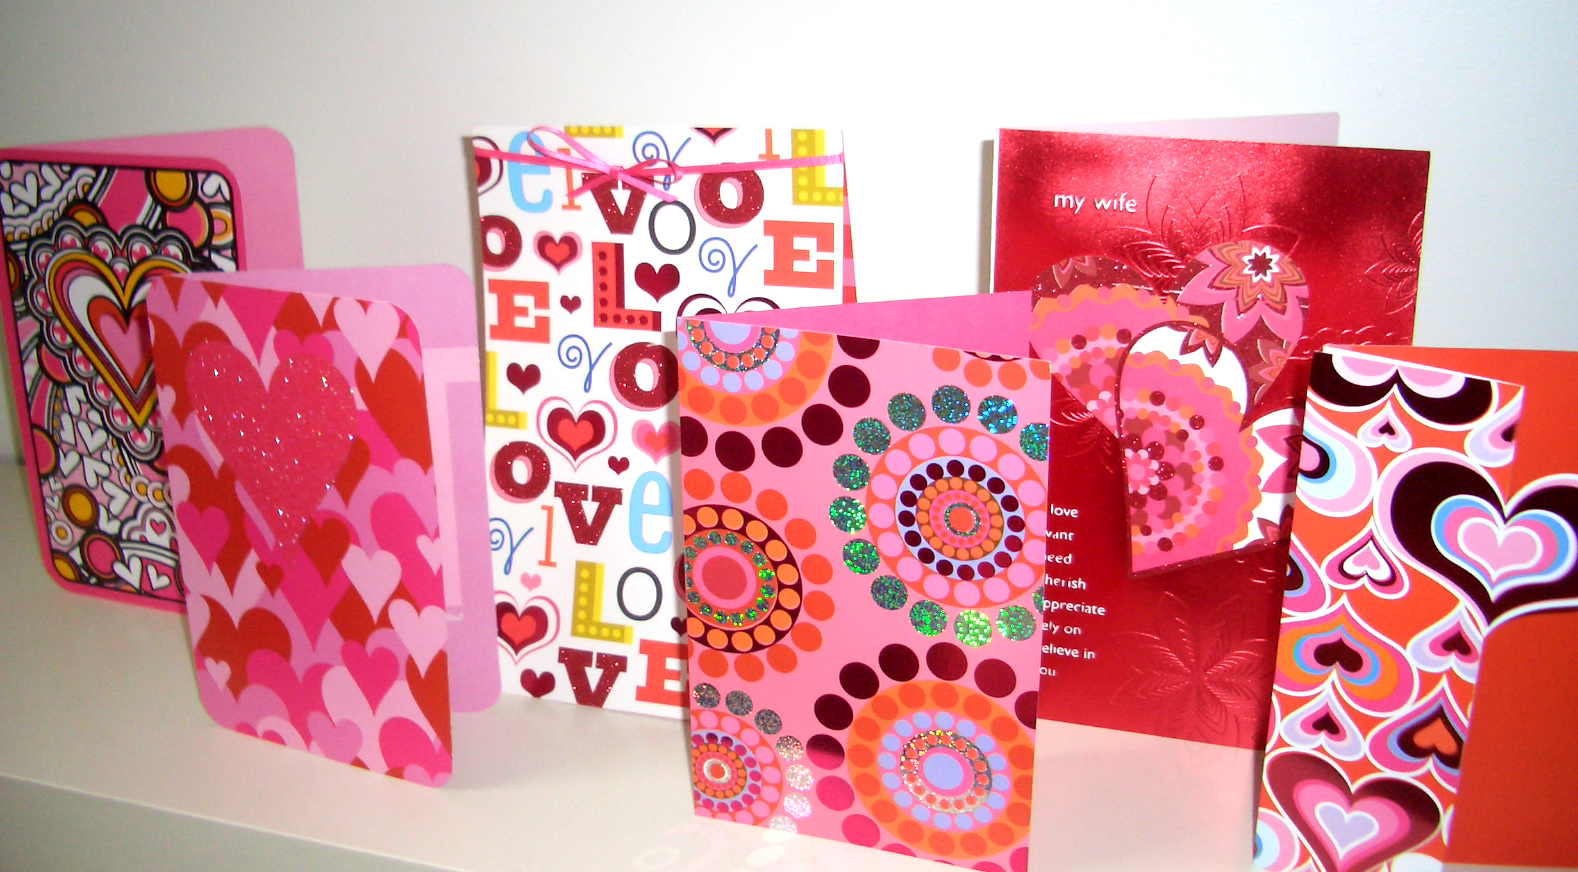 American greetings 2 off 2 valentines day cards southern savers american greetings m4hsunfo Gallery